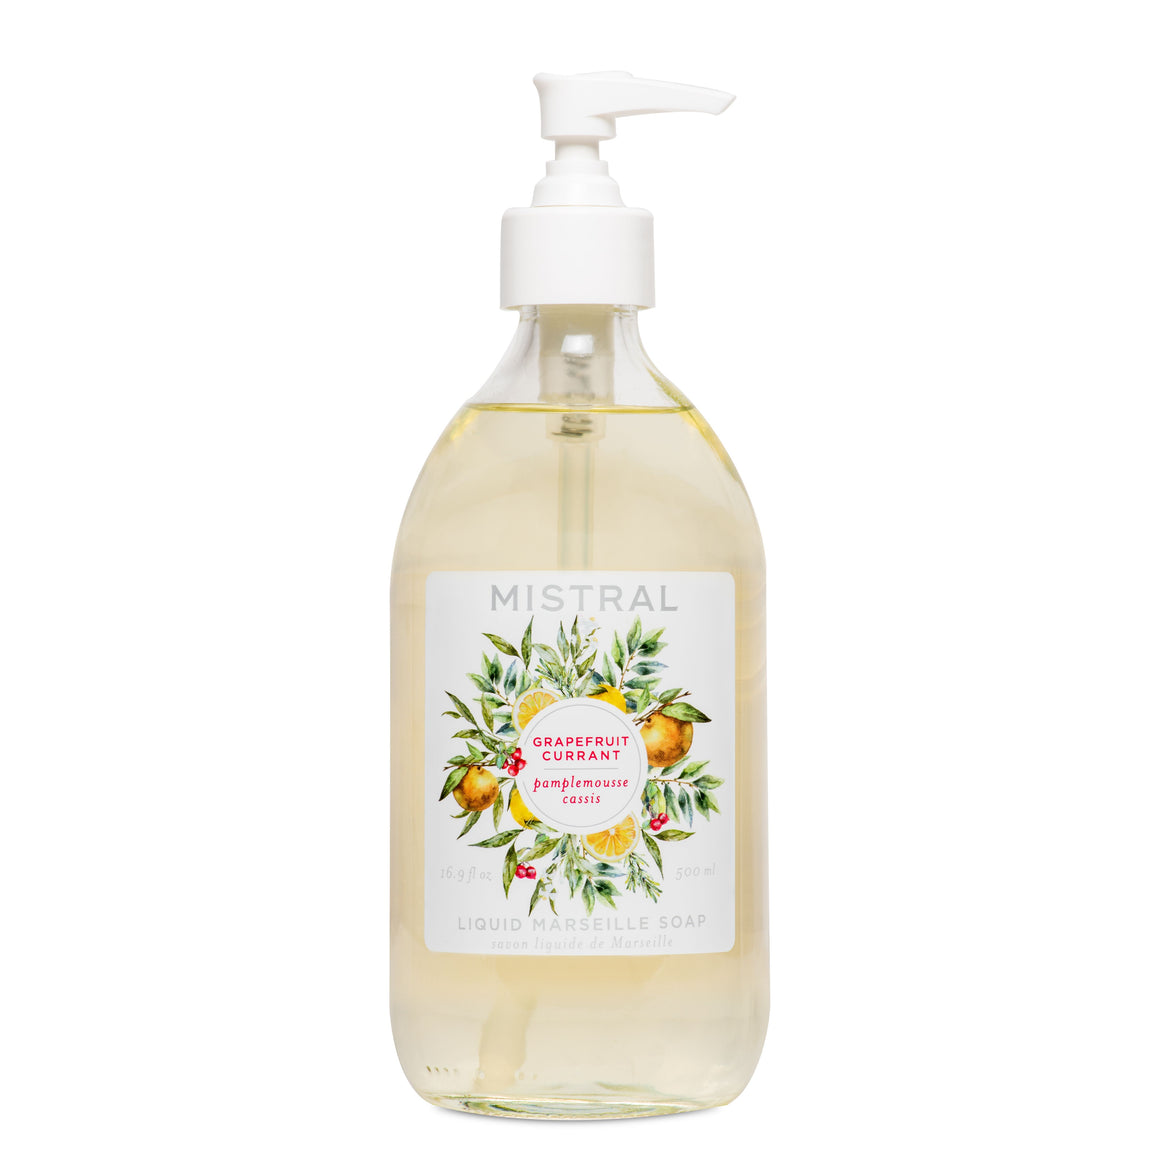 Grapefruit Currant Liquid Marseille Soap